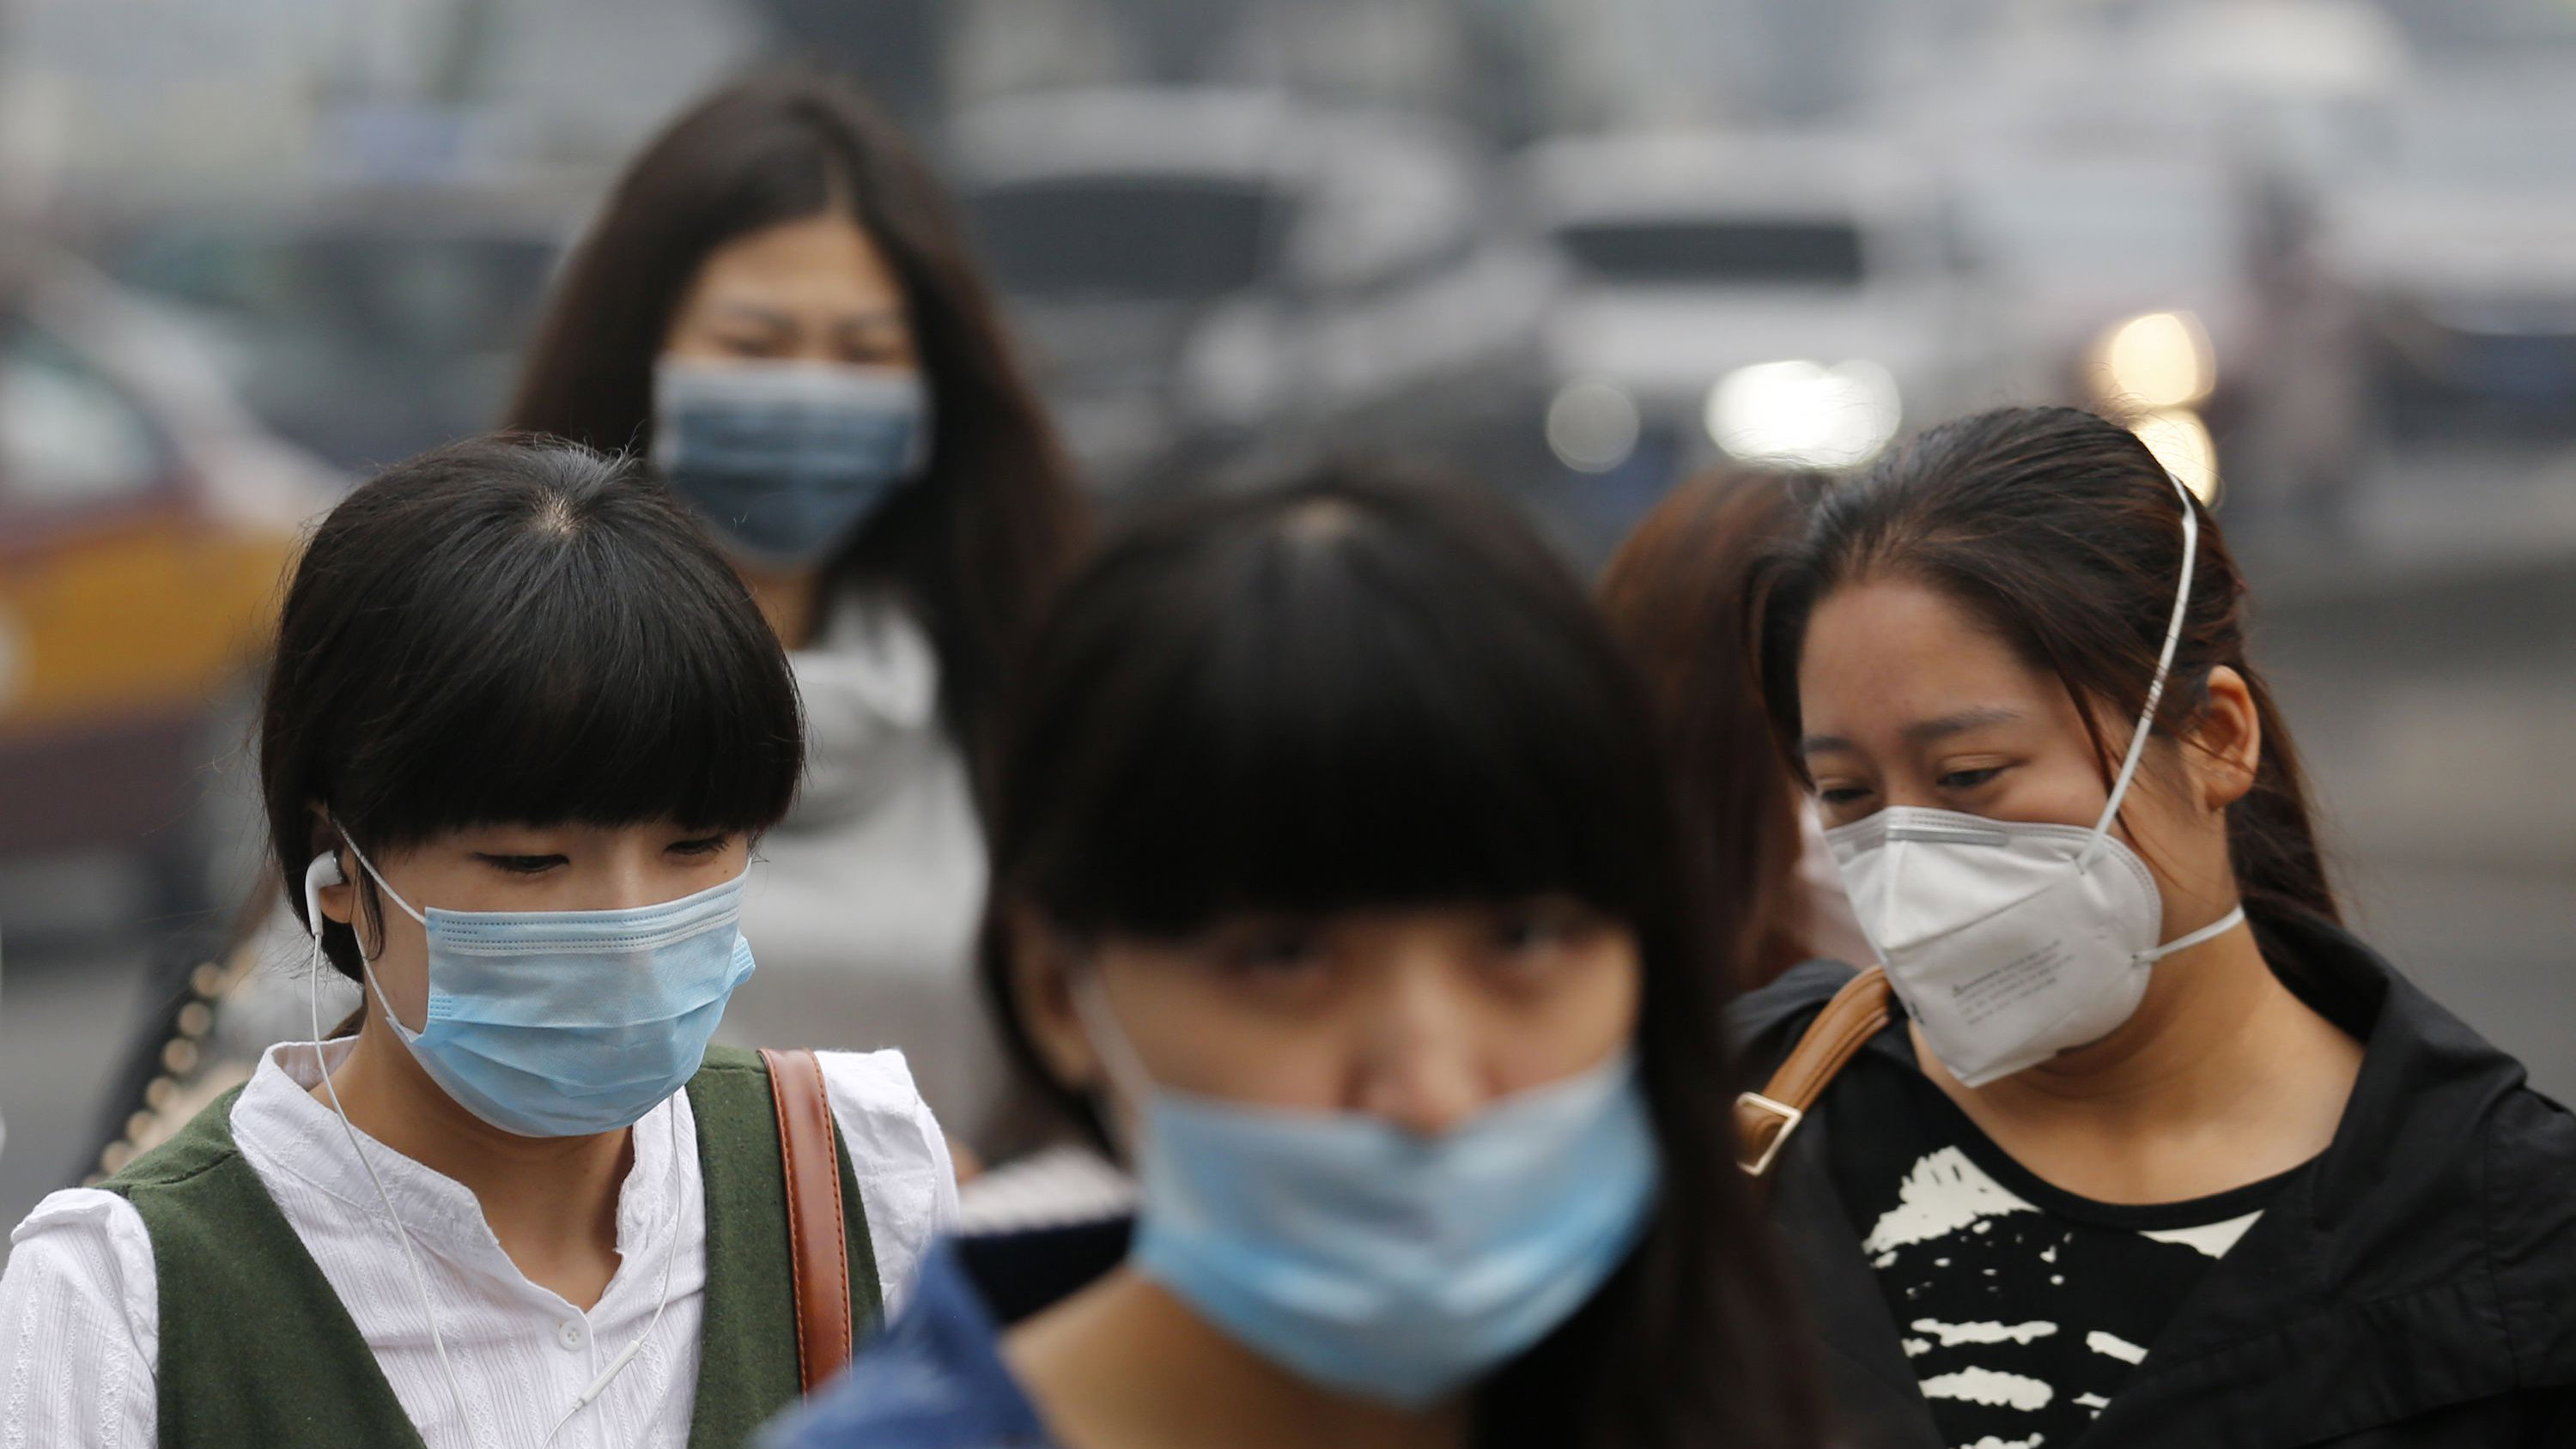 Pedestrians wearing masks walk on a street during a hazy day in Beijing October 10, 2014. Widespread smog has affected a large part of north China including capital Beijing as the National Meteorological Center (NMC) extended a yellow alert on Thursday for air pollution, Xinhua News Agency reported.  REUTERS/Kim Kyung-Hoon